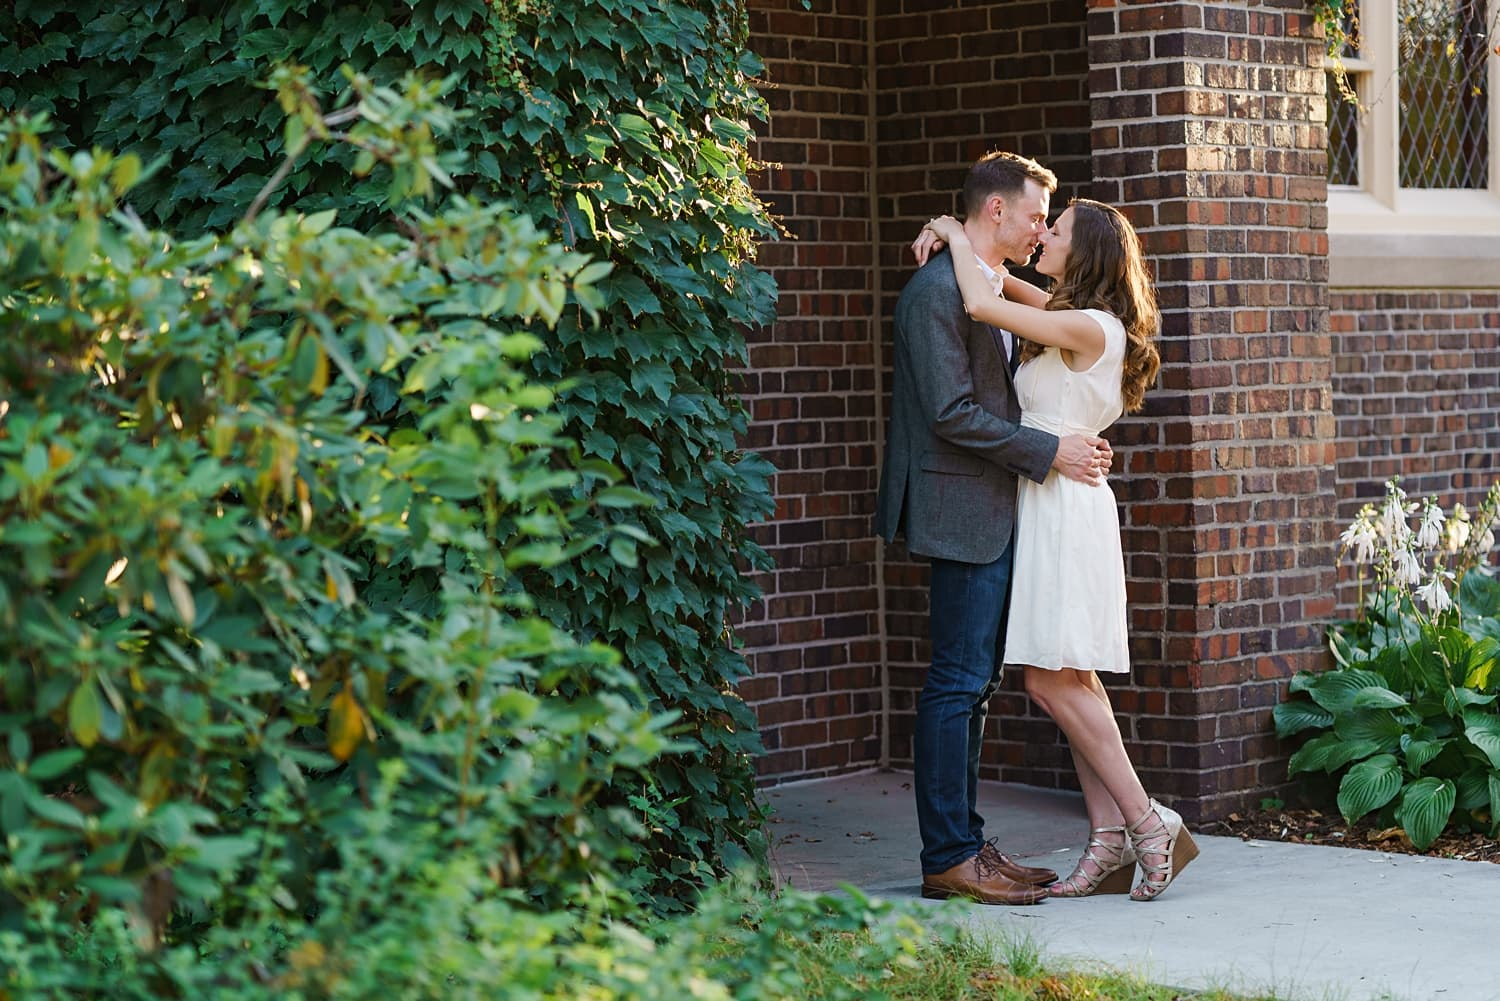 Grinnell College engagement session